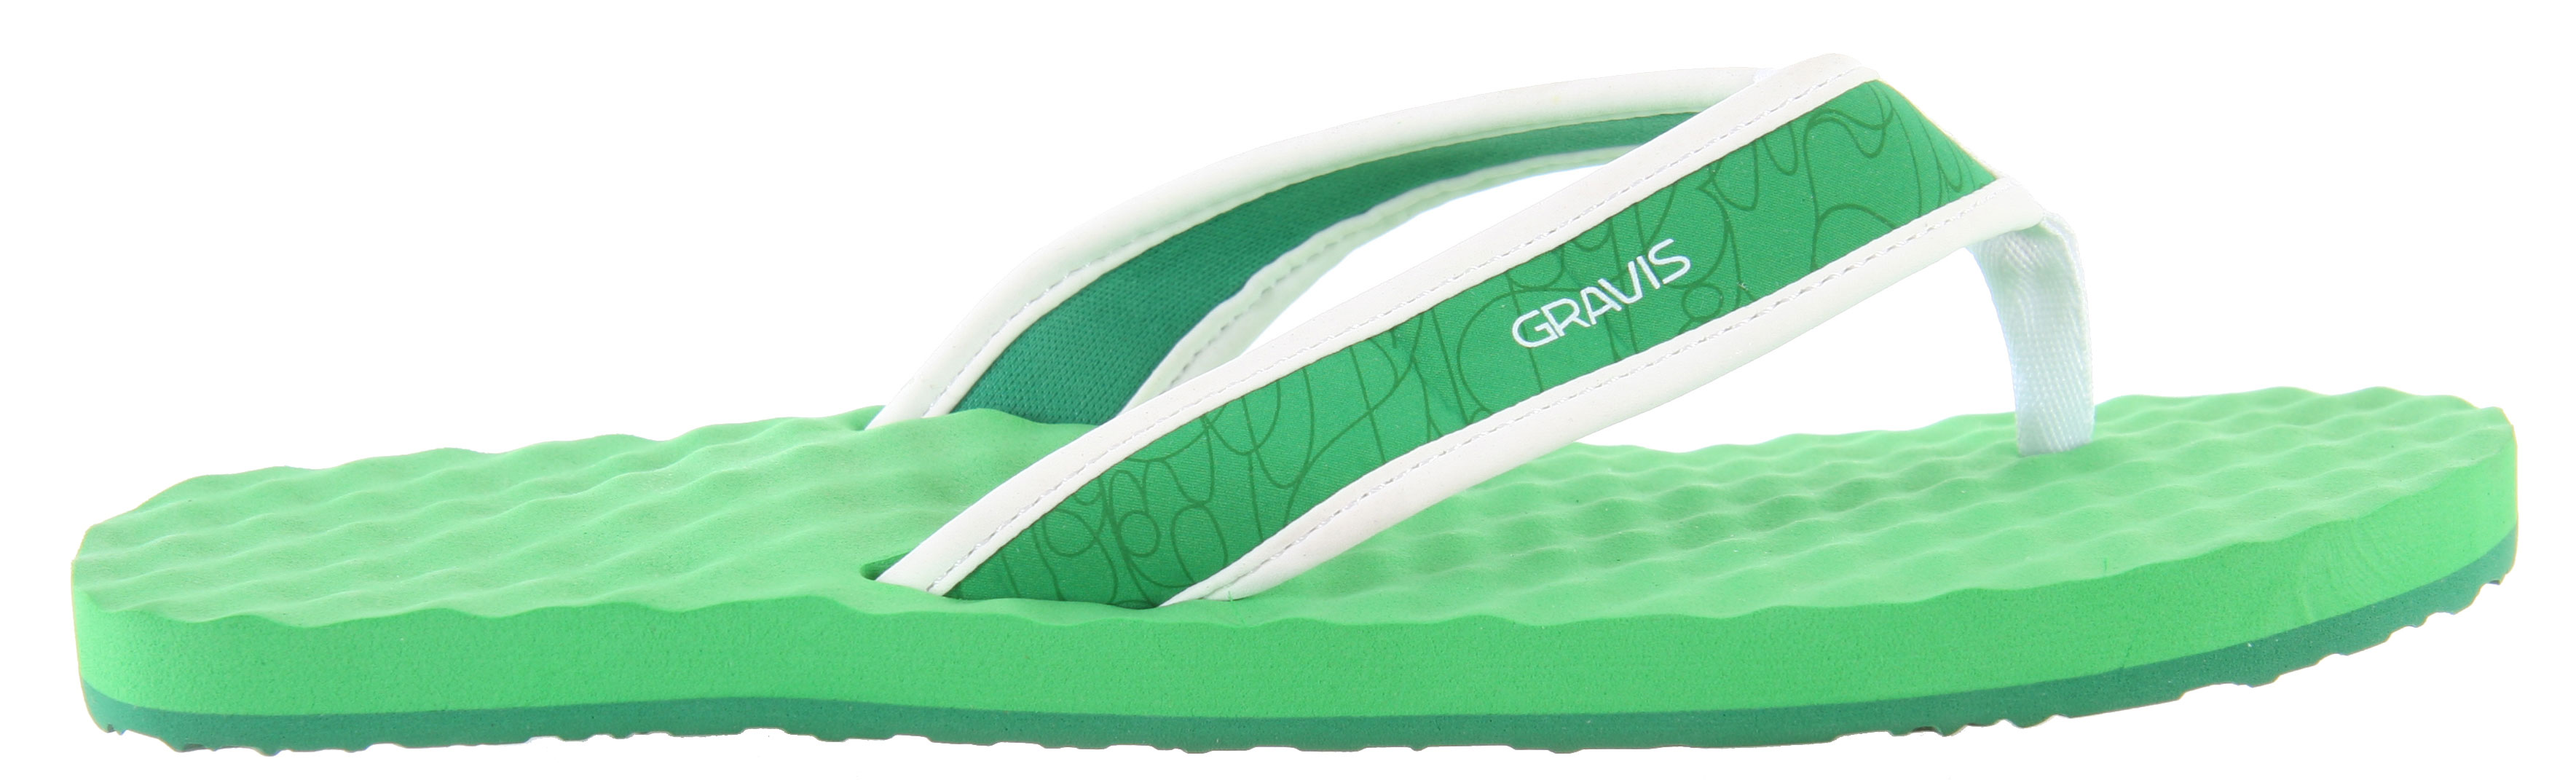 Surf The Gravis Soundcheck Sandals are so simple in design, you really can't go wrong with them. They are super comfortable and lightweight, it's ideal to wear everywhere all summer long. Hit the beach, pool or relax at the park with these great pair of sandals. Super casual, these are perfect for daytime. So rock them with pride and be sure to stay comfortable all day long.Key Features of the Gravis Soundcheck Sandals: Synthetic Nubuck Strap Molded Logo Signature Soft Topdeck - $5.95